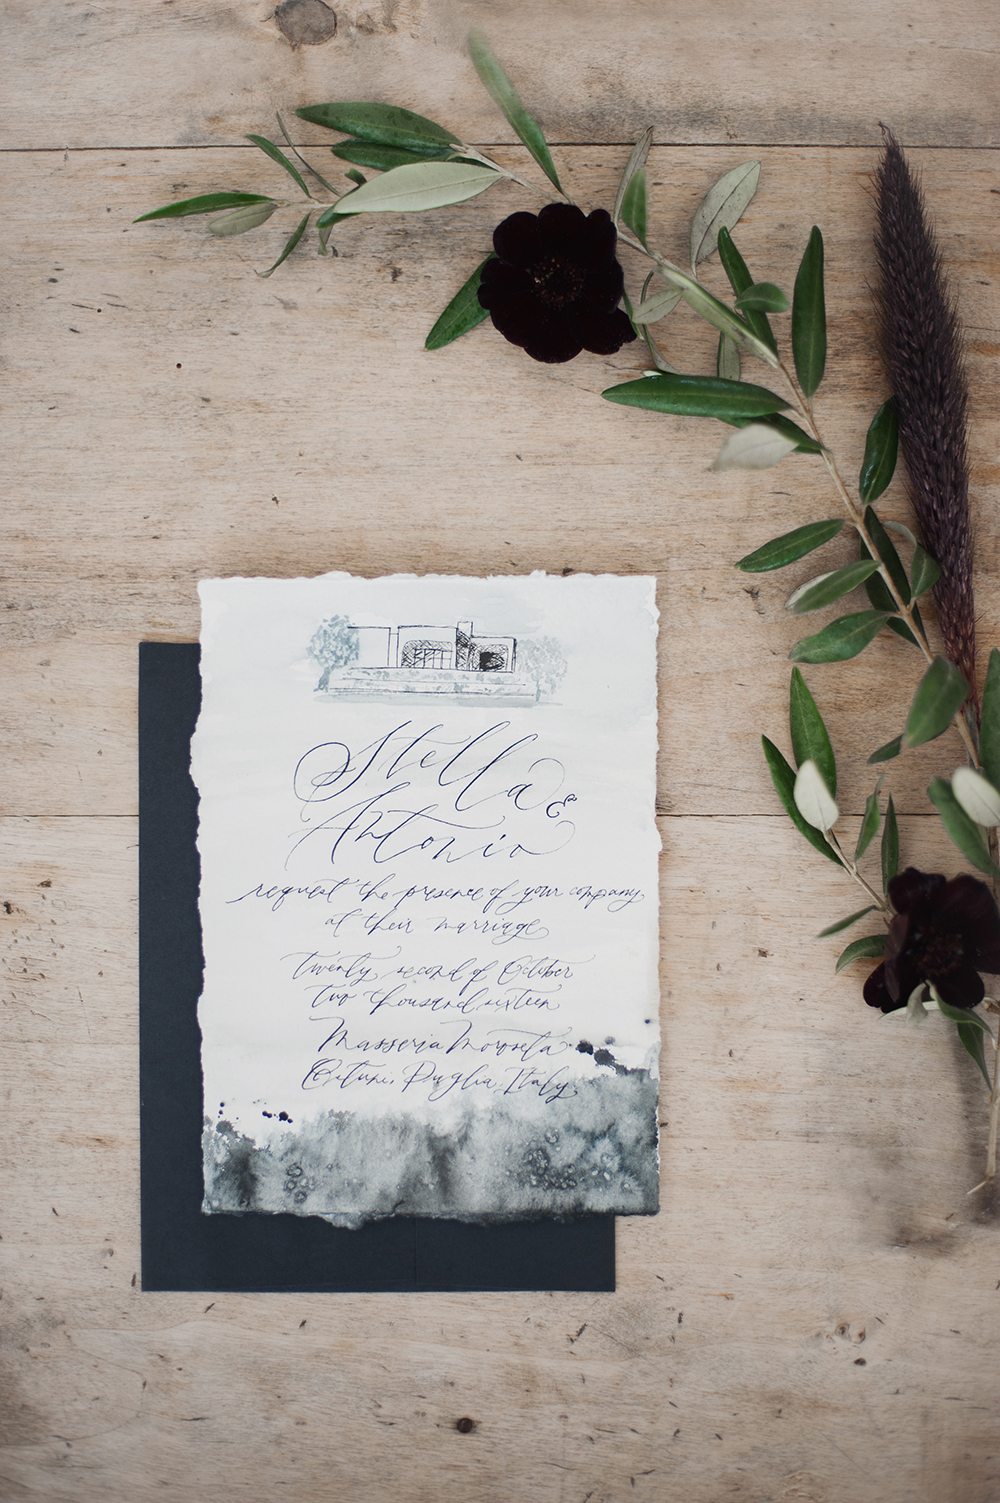 Puglia Wedding Creative Copy 0056